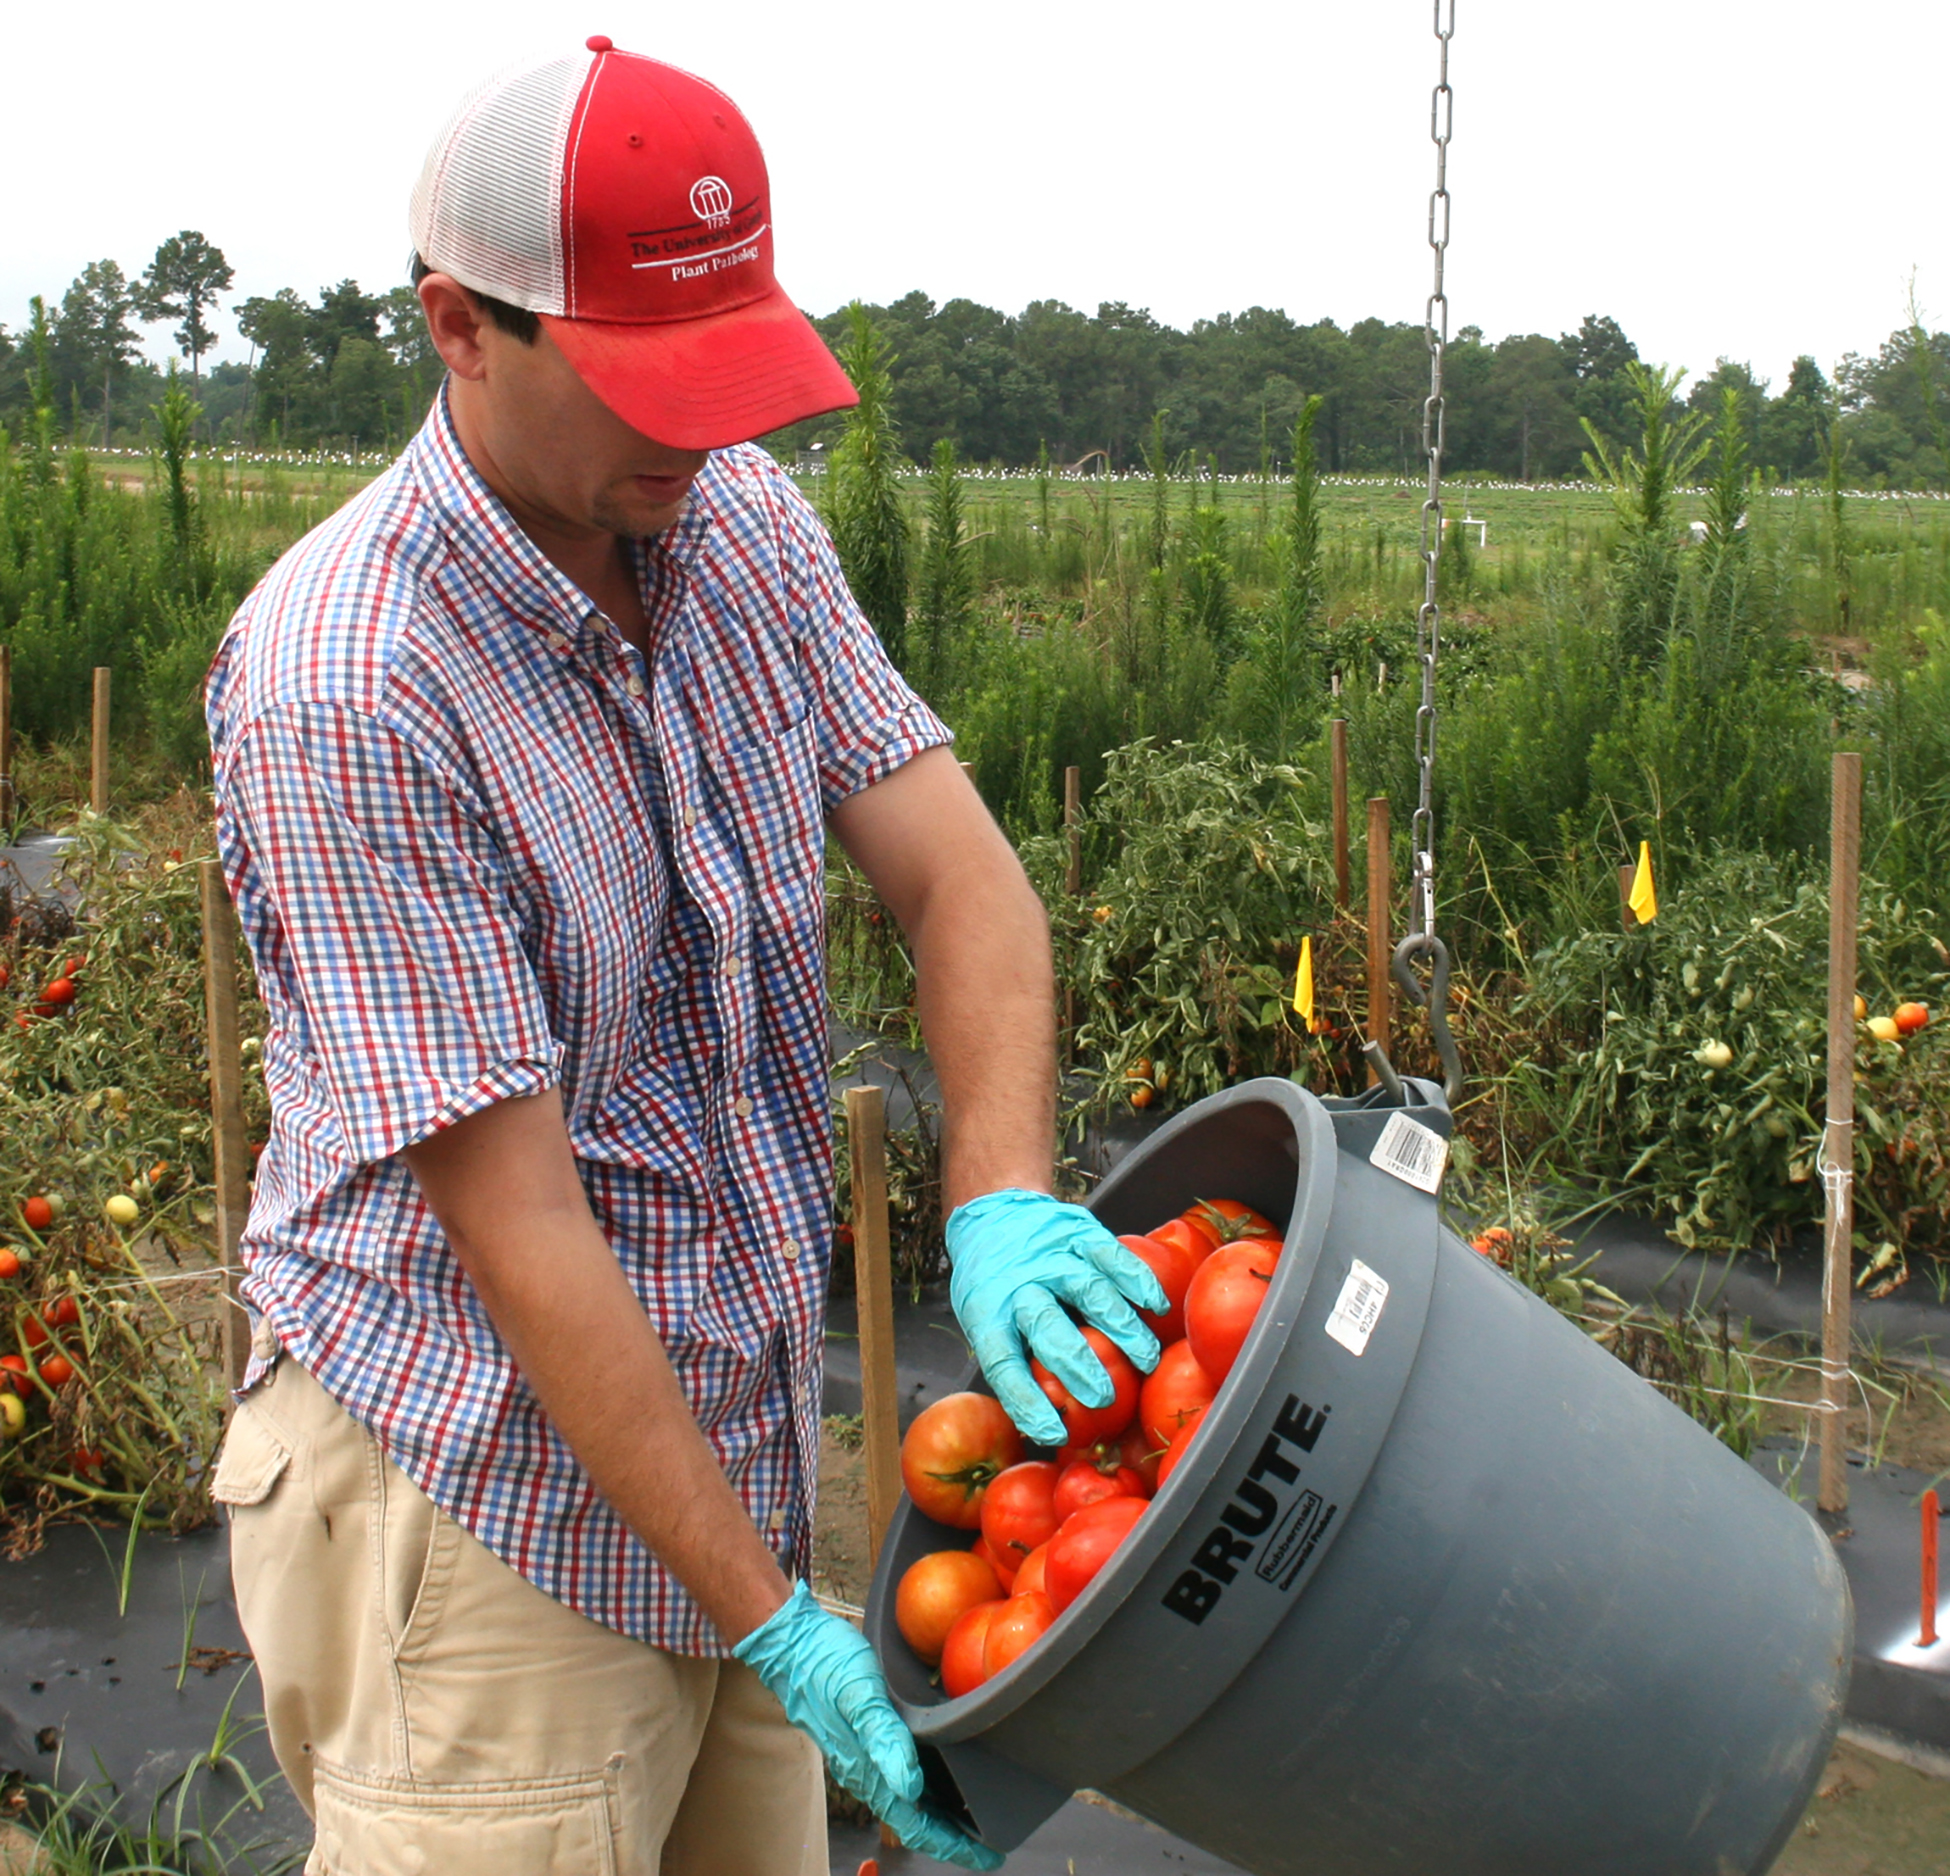 An employee working on the UGA Tifton Campus weighs tomatoes at the Blackshank Farm (file photo).